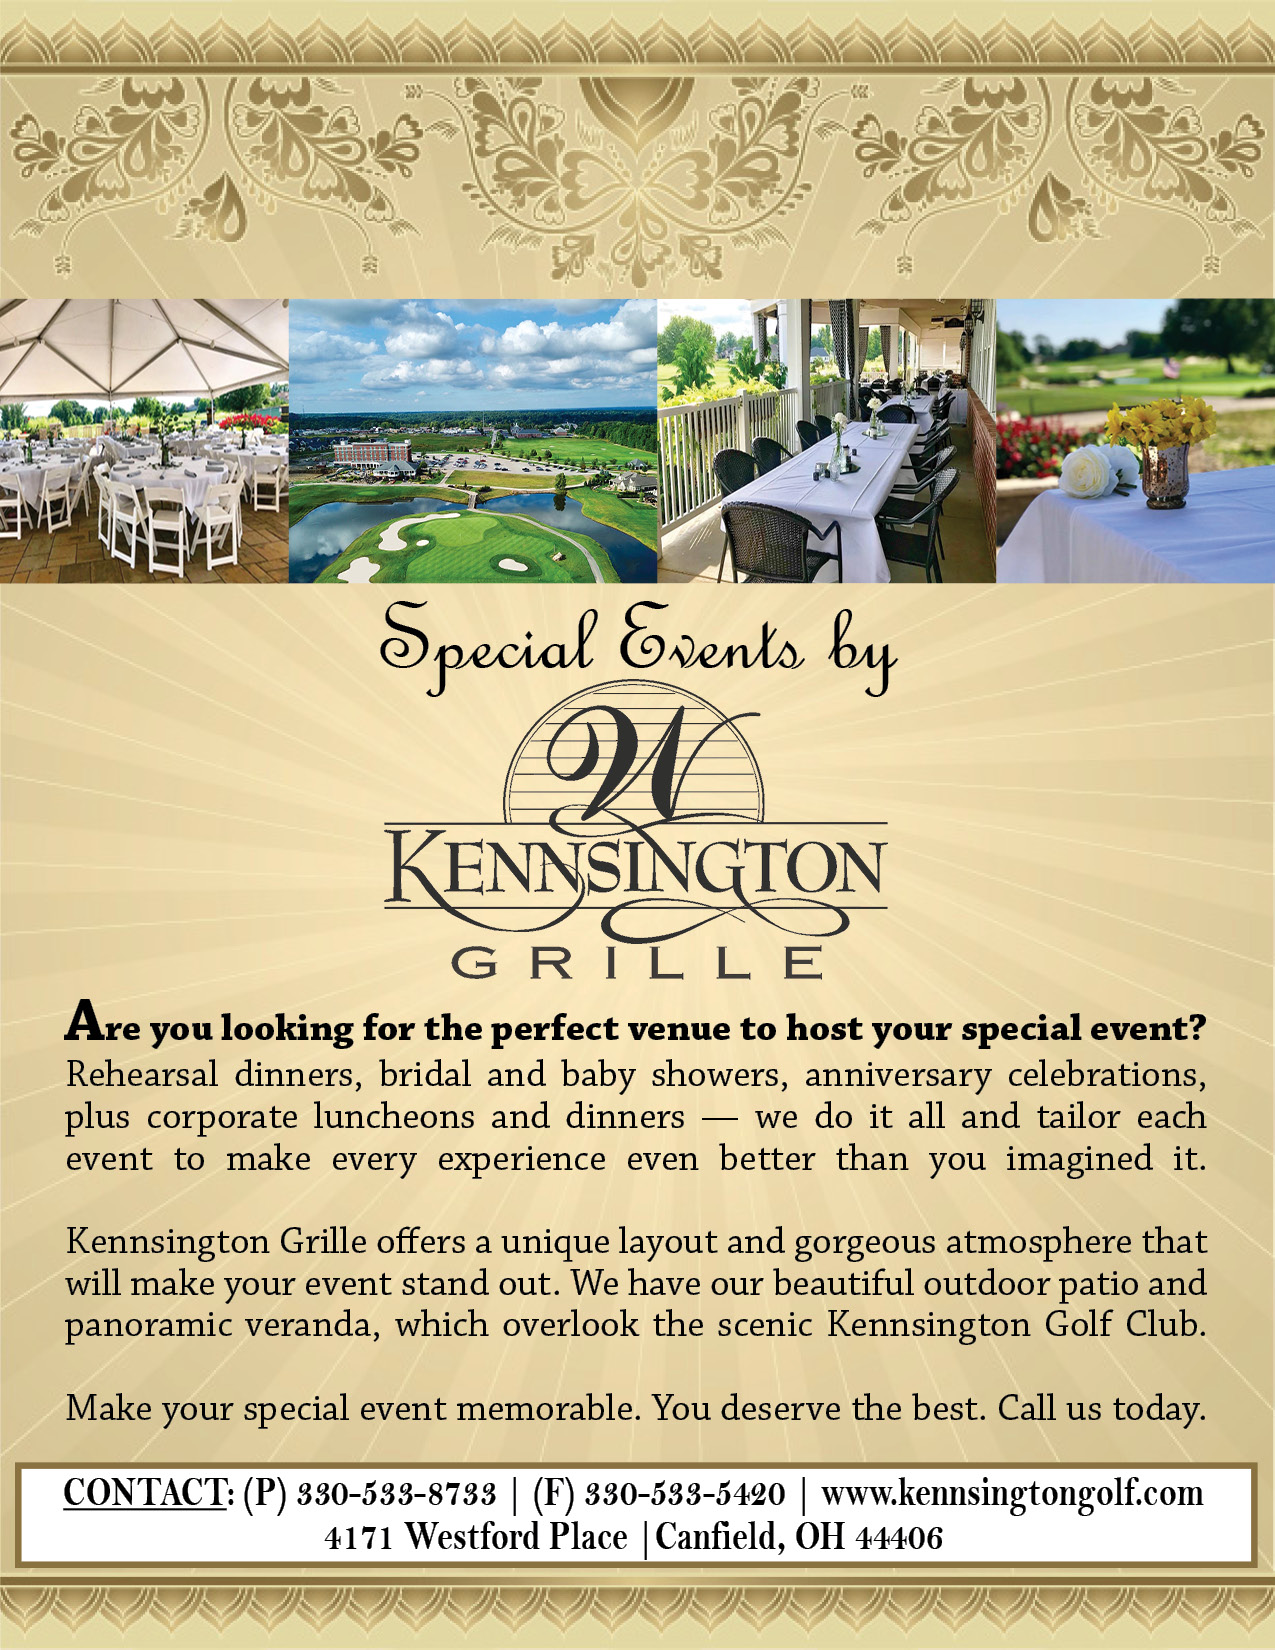 2018 KENNSINGTON GRILLE SPECIAL EVENTS cover final